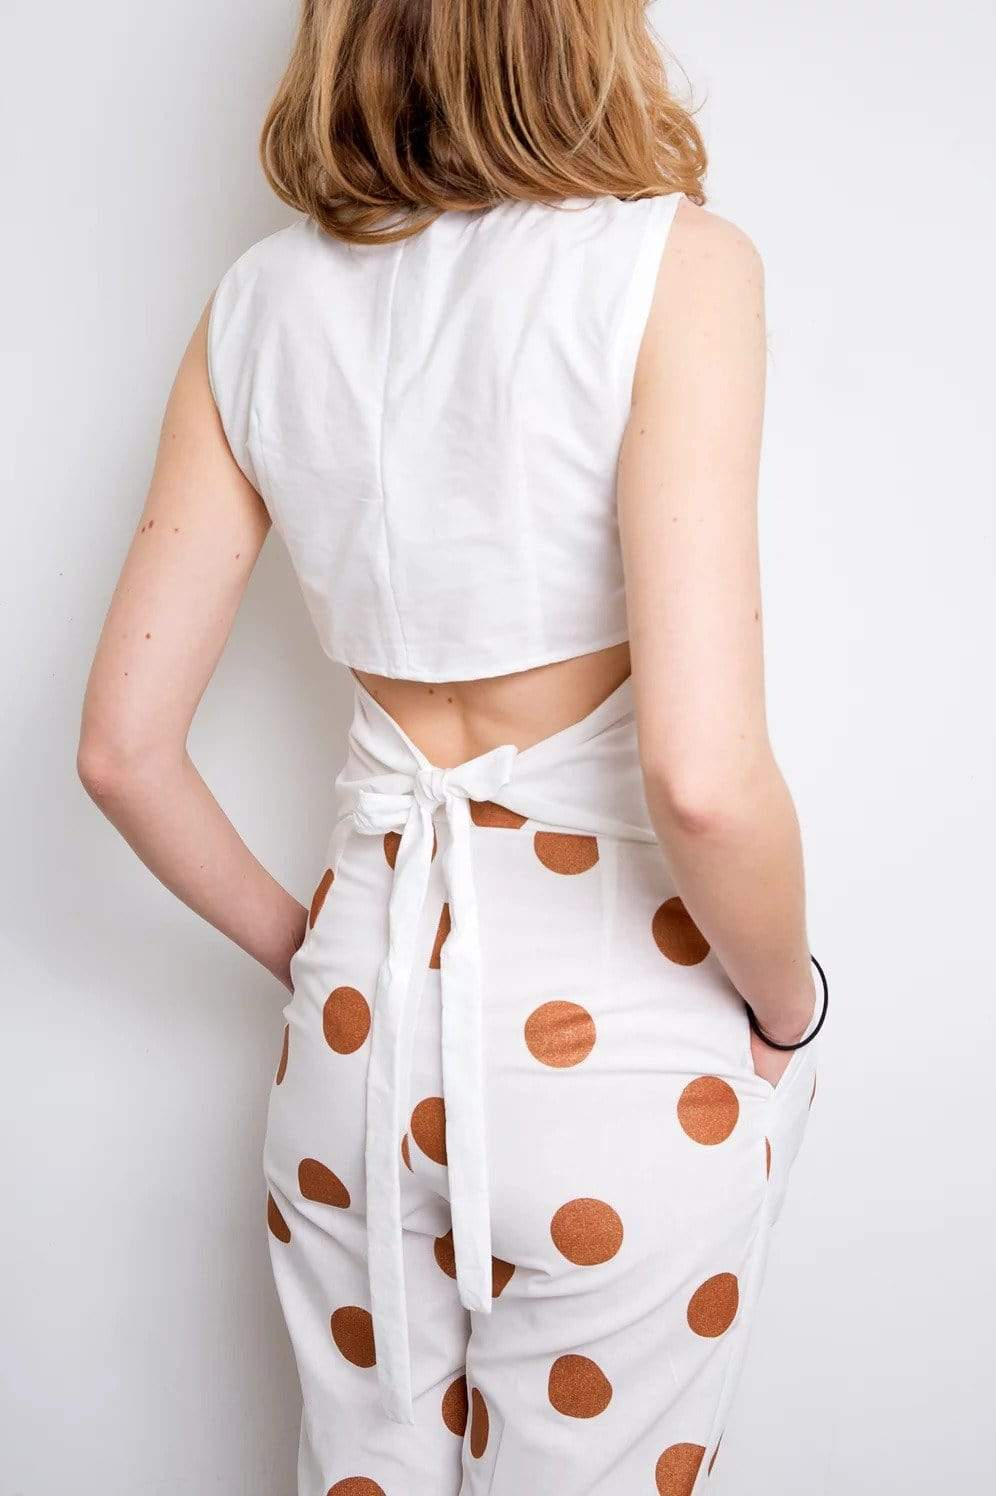 Sophia Schneider-Esleben top Sommer Liebe Top. Organic Cotton. sustainable fashion ethical fashion